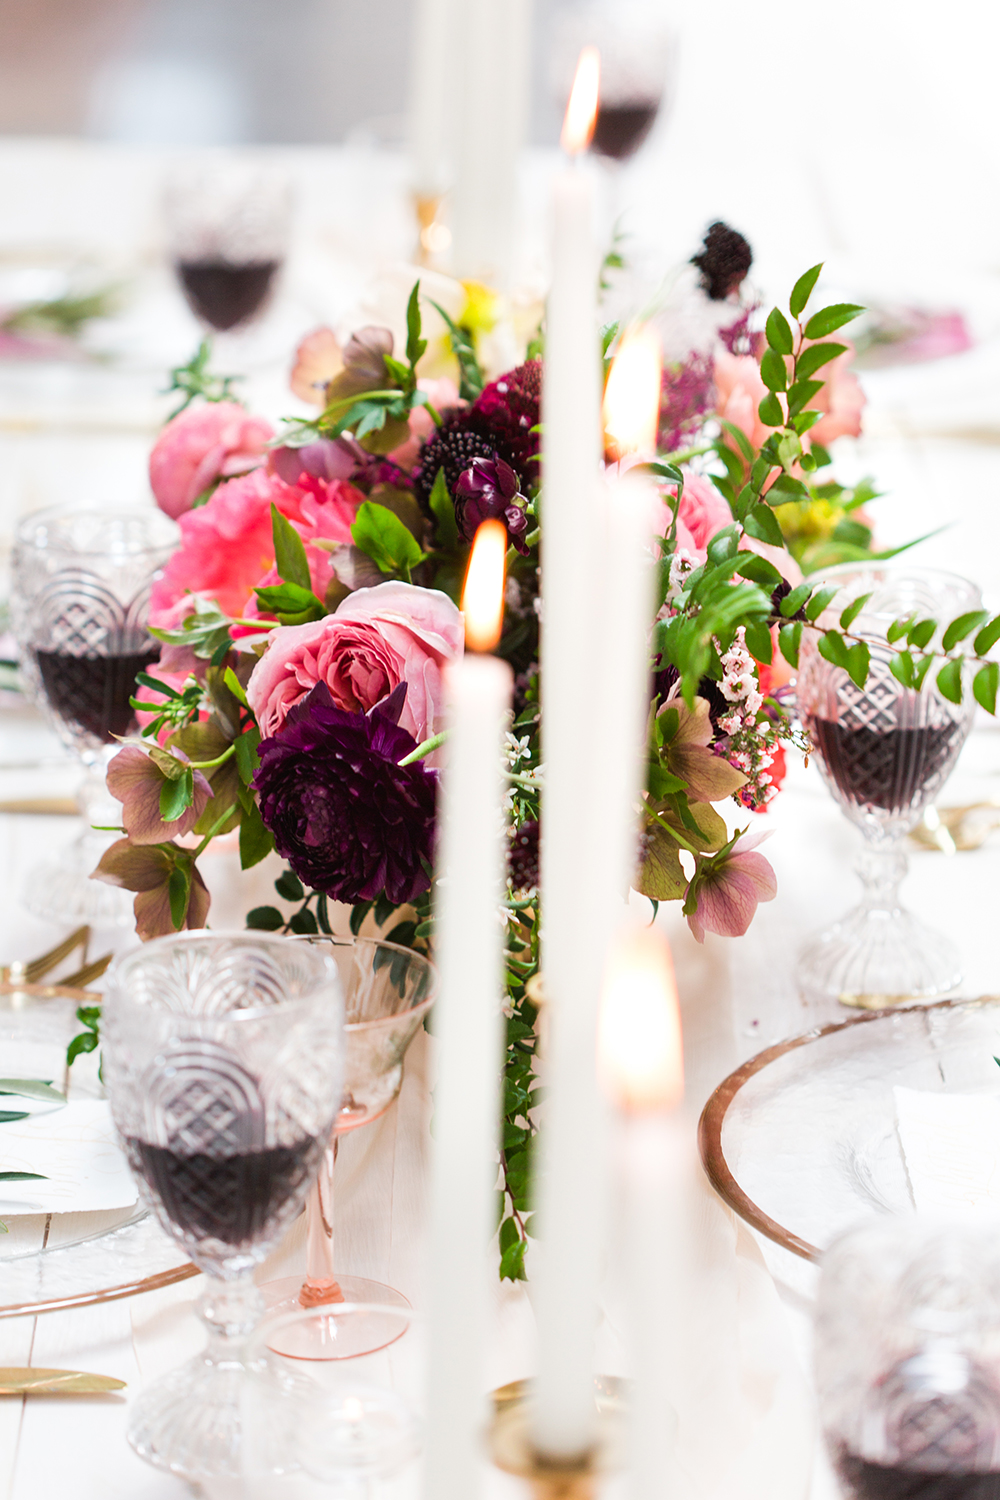 wedding centerpieces - photo by Lauren Lee Photography http://ruffledblog.com/modern-grecian-inspired-wedding-ideas